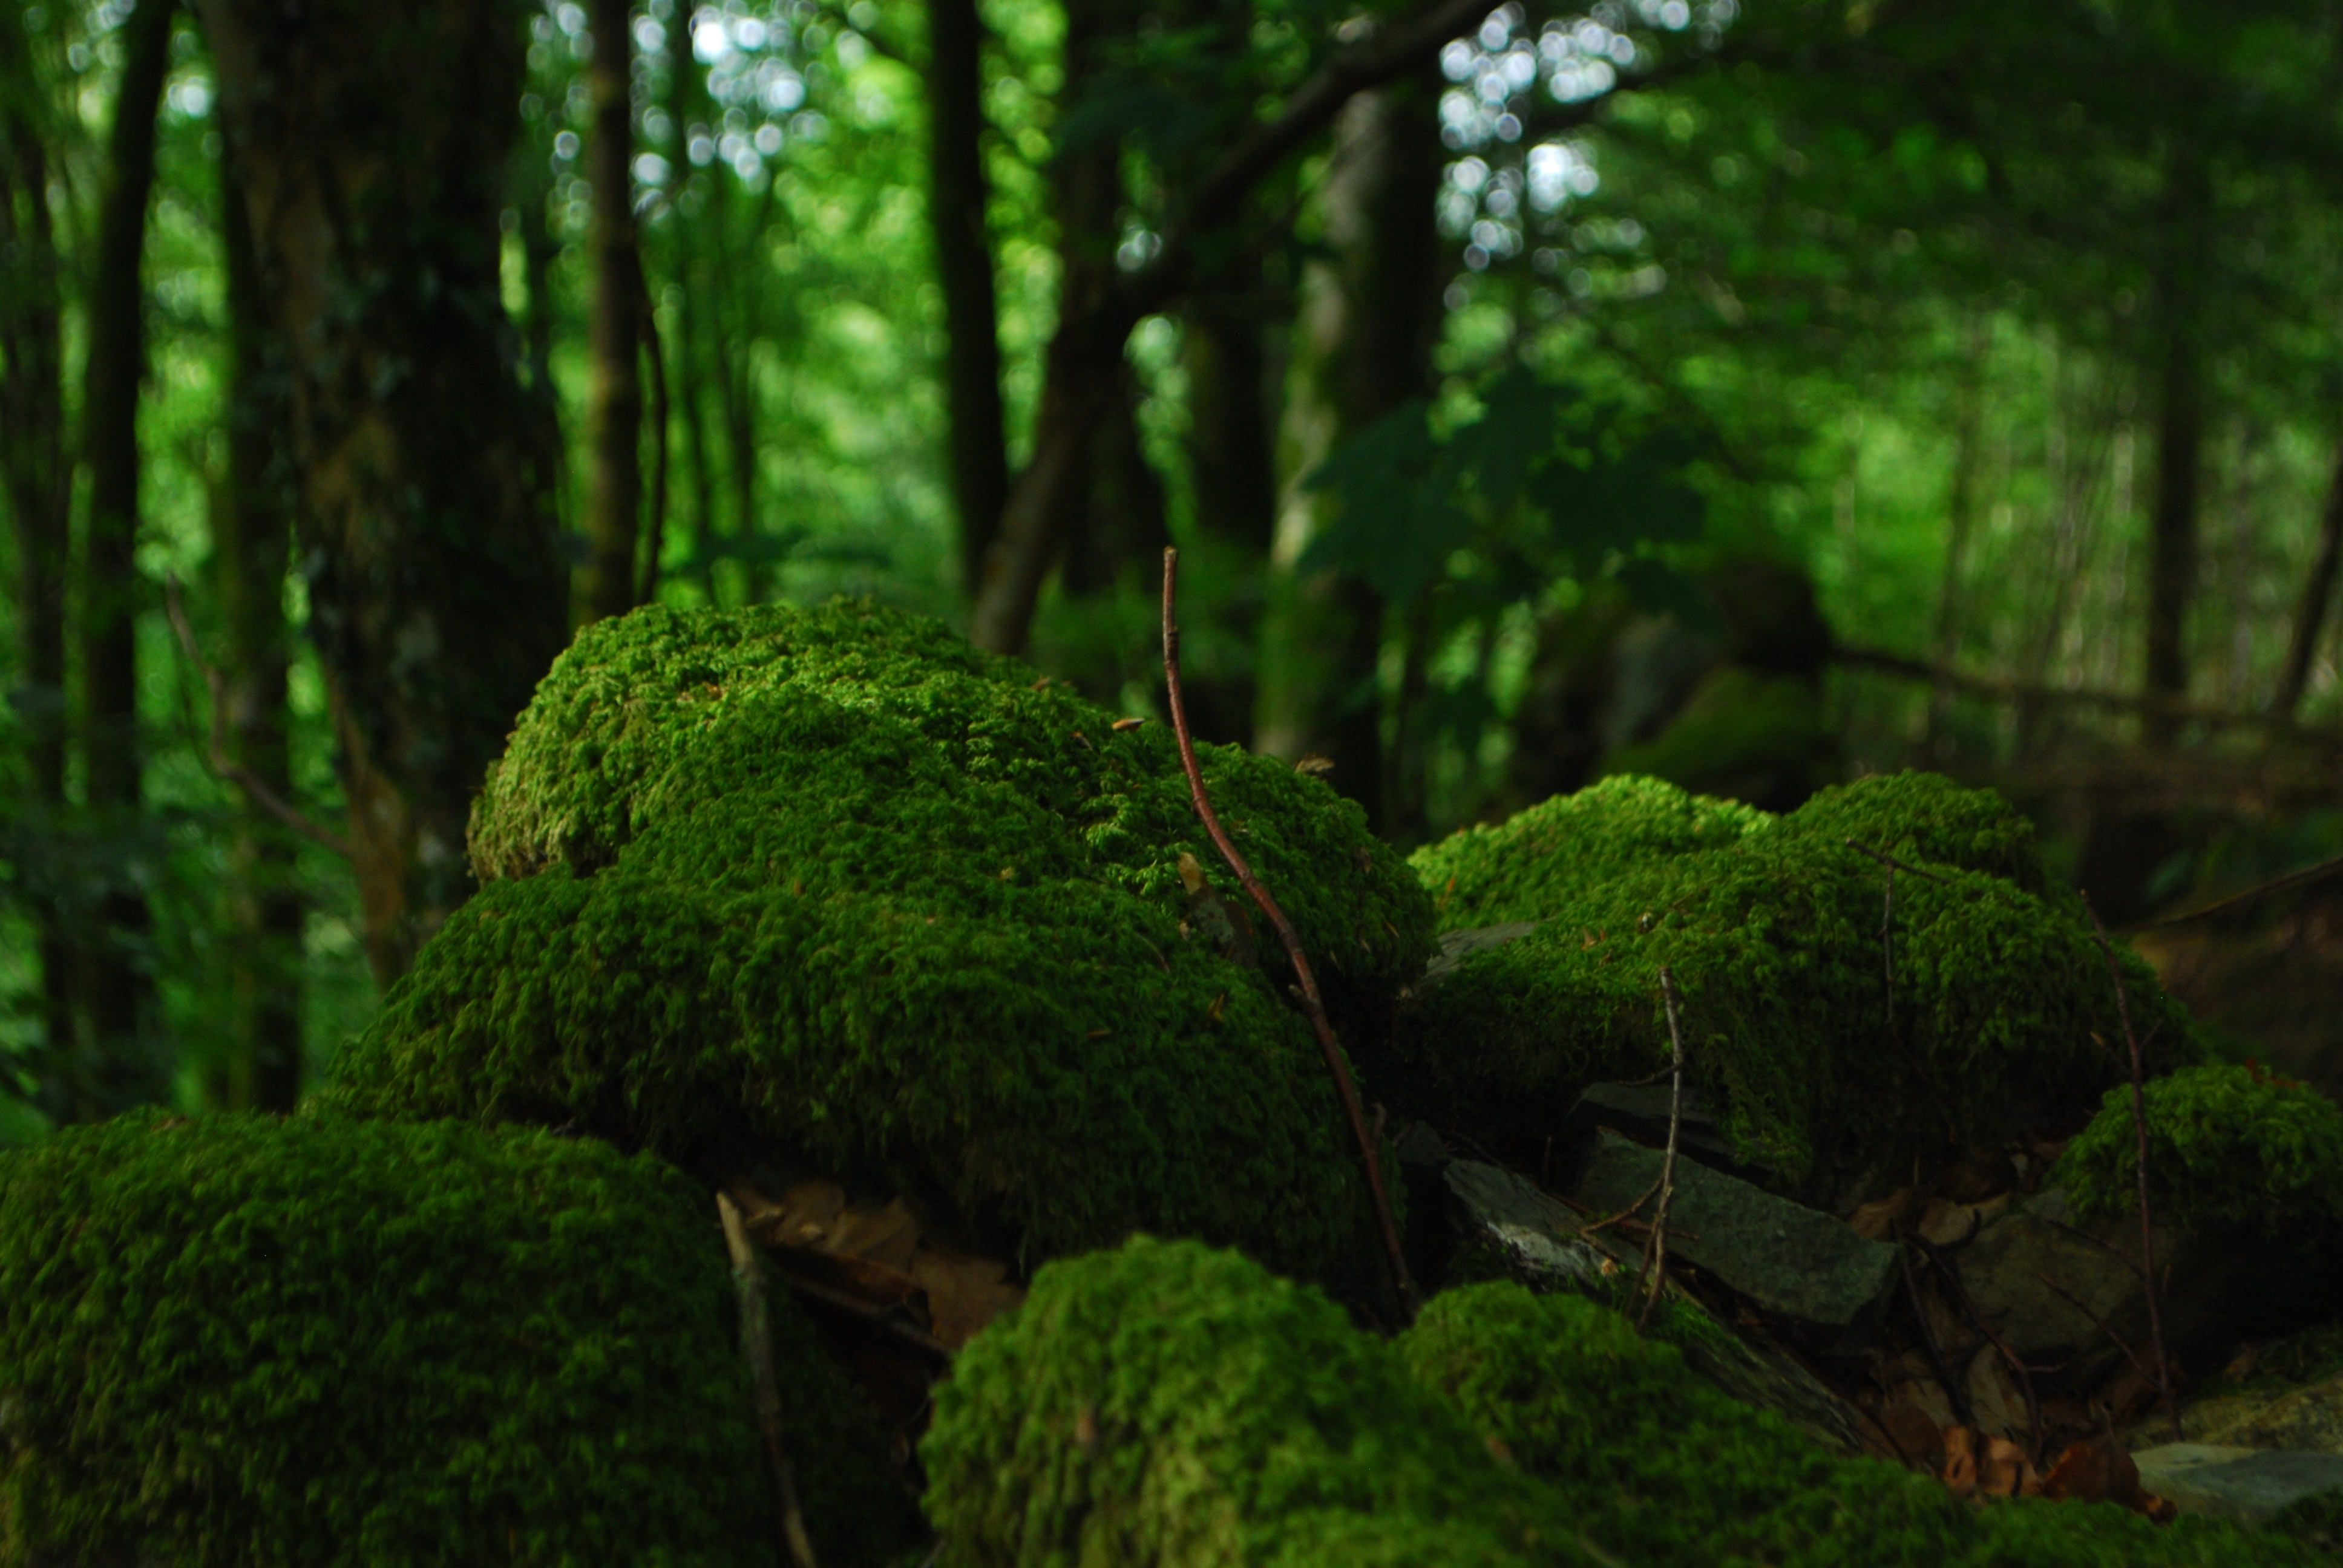 A group of rocks covered by a thick layer of moss in the middle of a forest